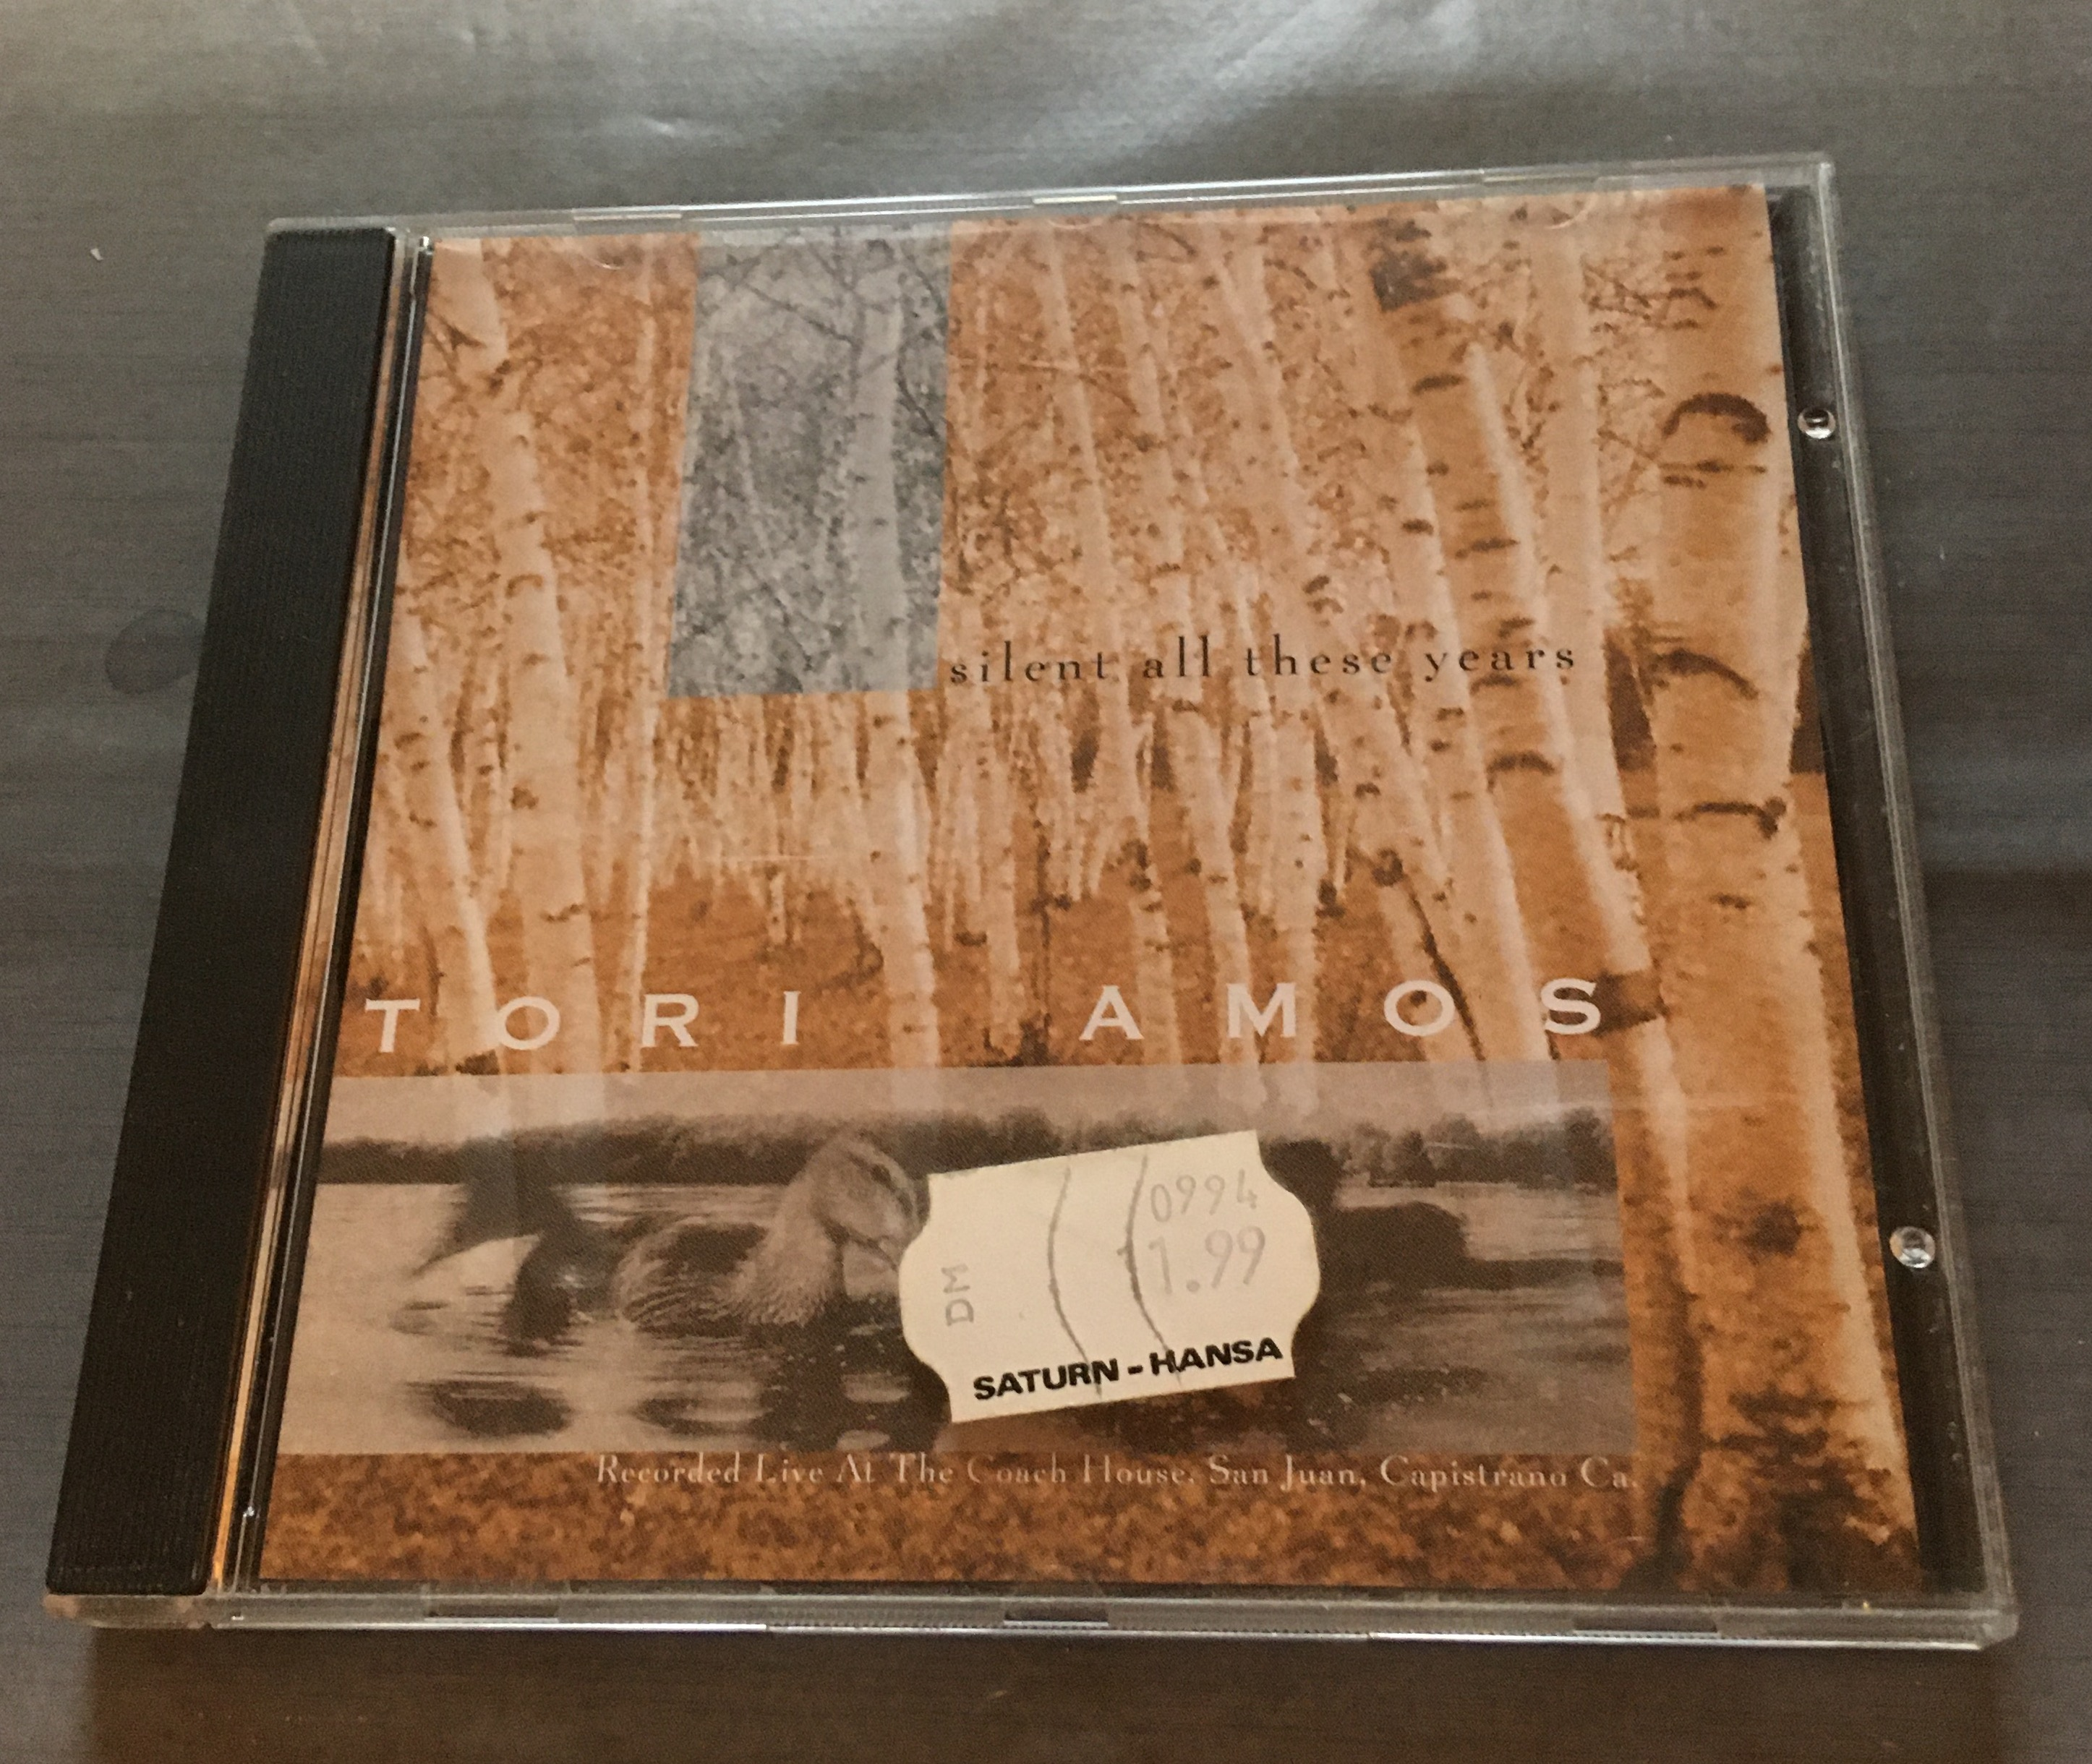 CD Tori Amos - Silent All These Years kostenlos